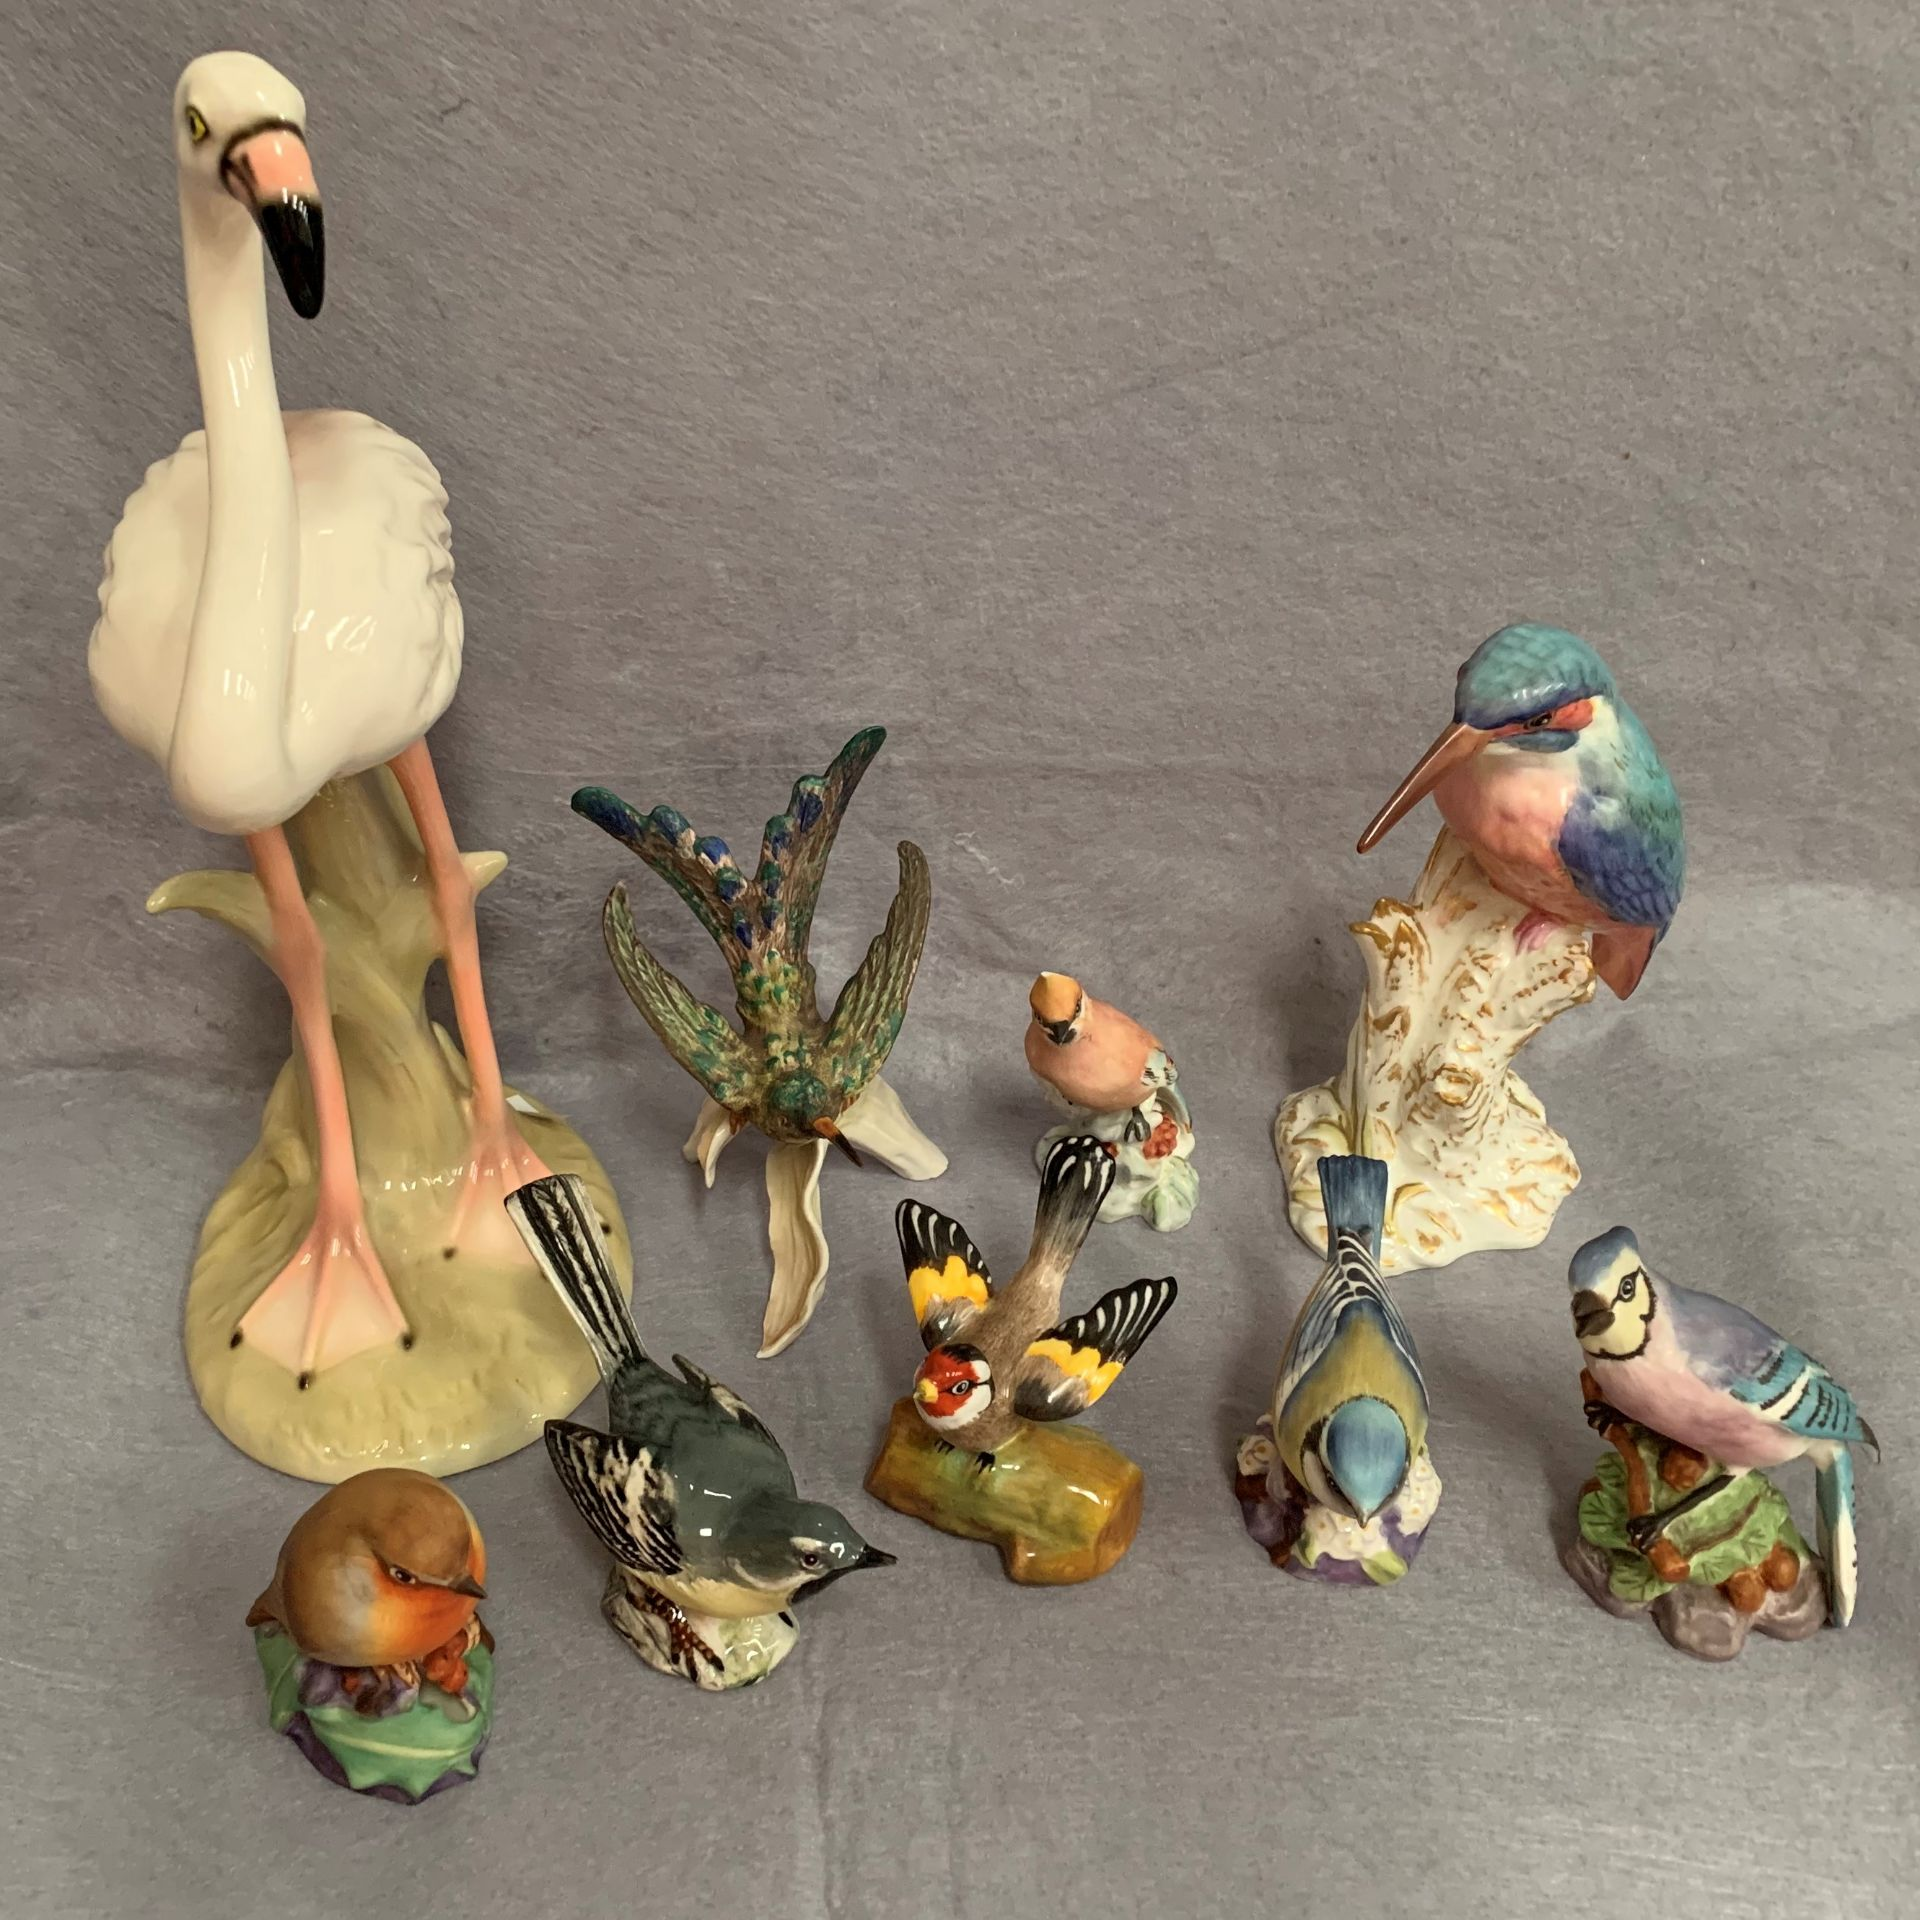 Lot 29 - 9 x ceramic bird figurines by Royal Belvedere, Royal Worcester,